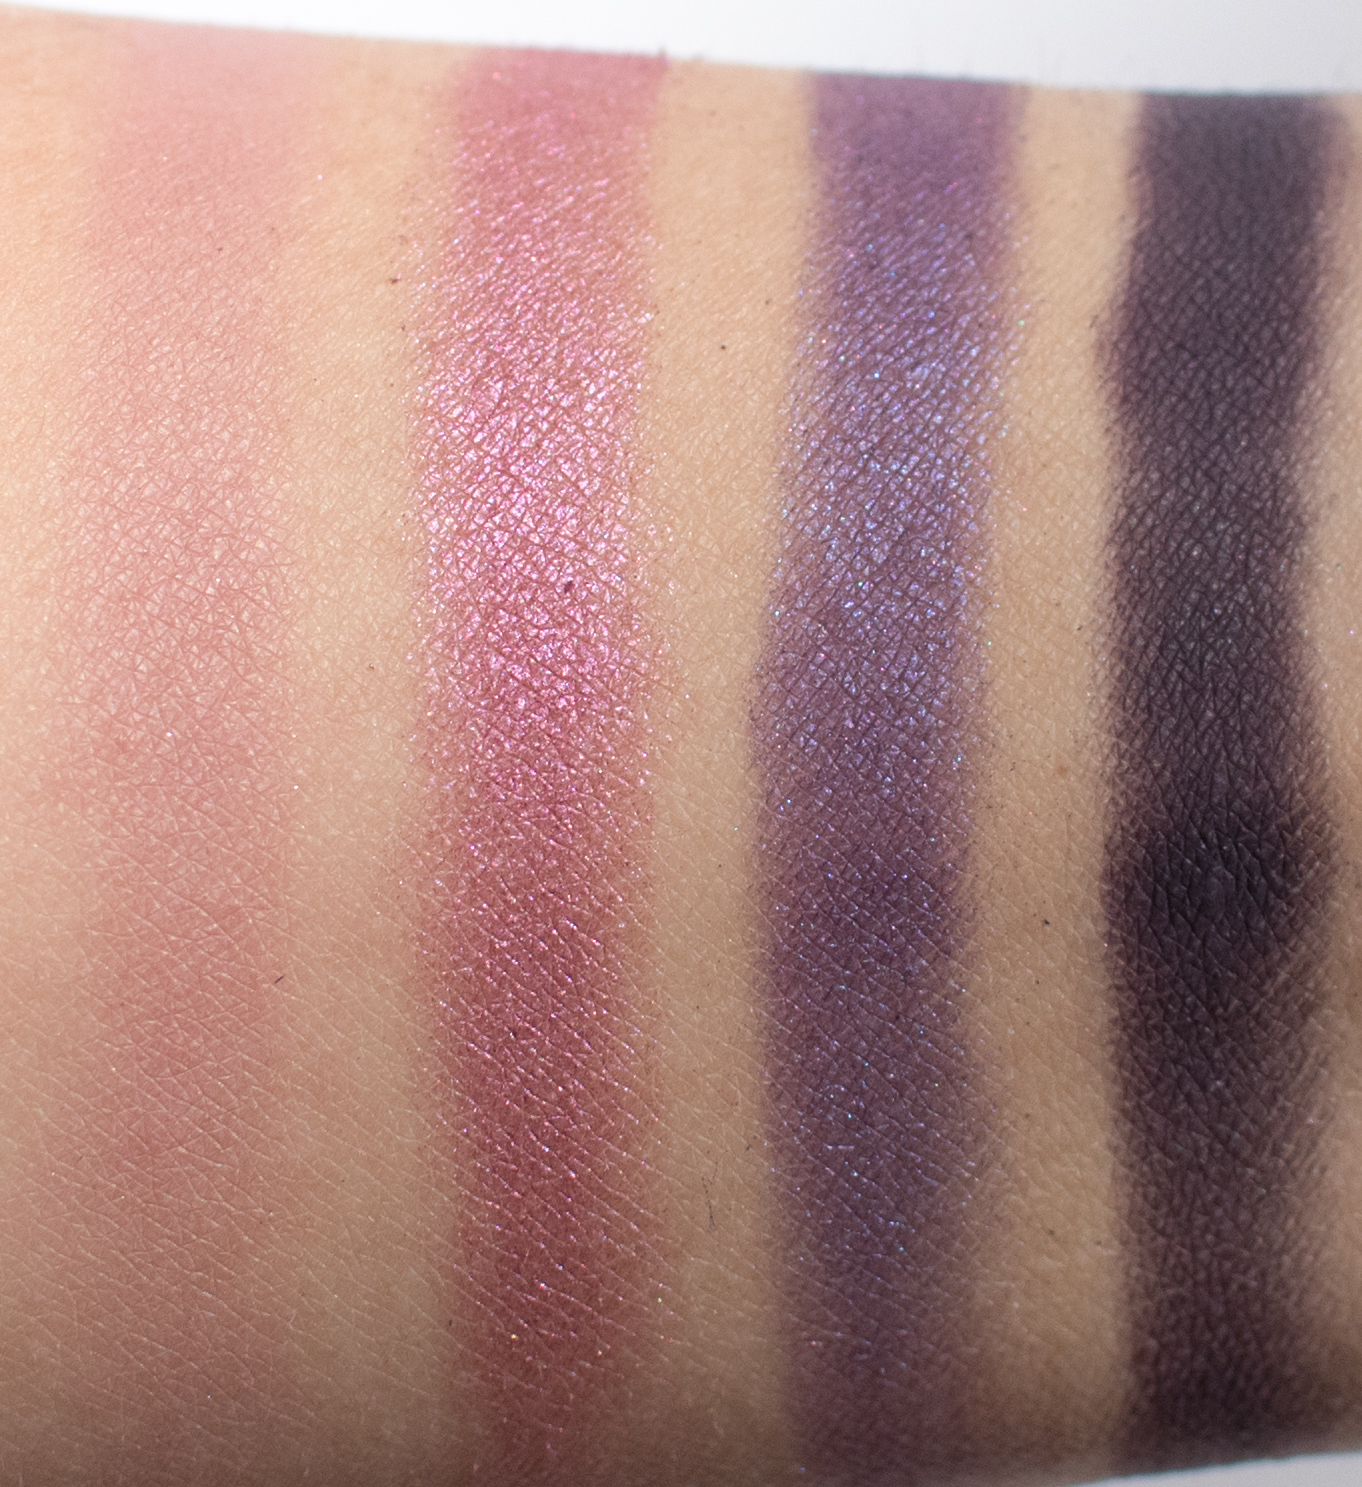 MAC x Patrickstarrr Stay With Me Swatches